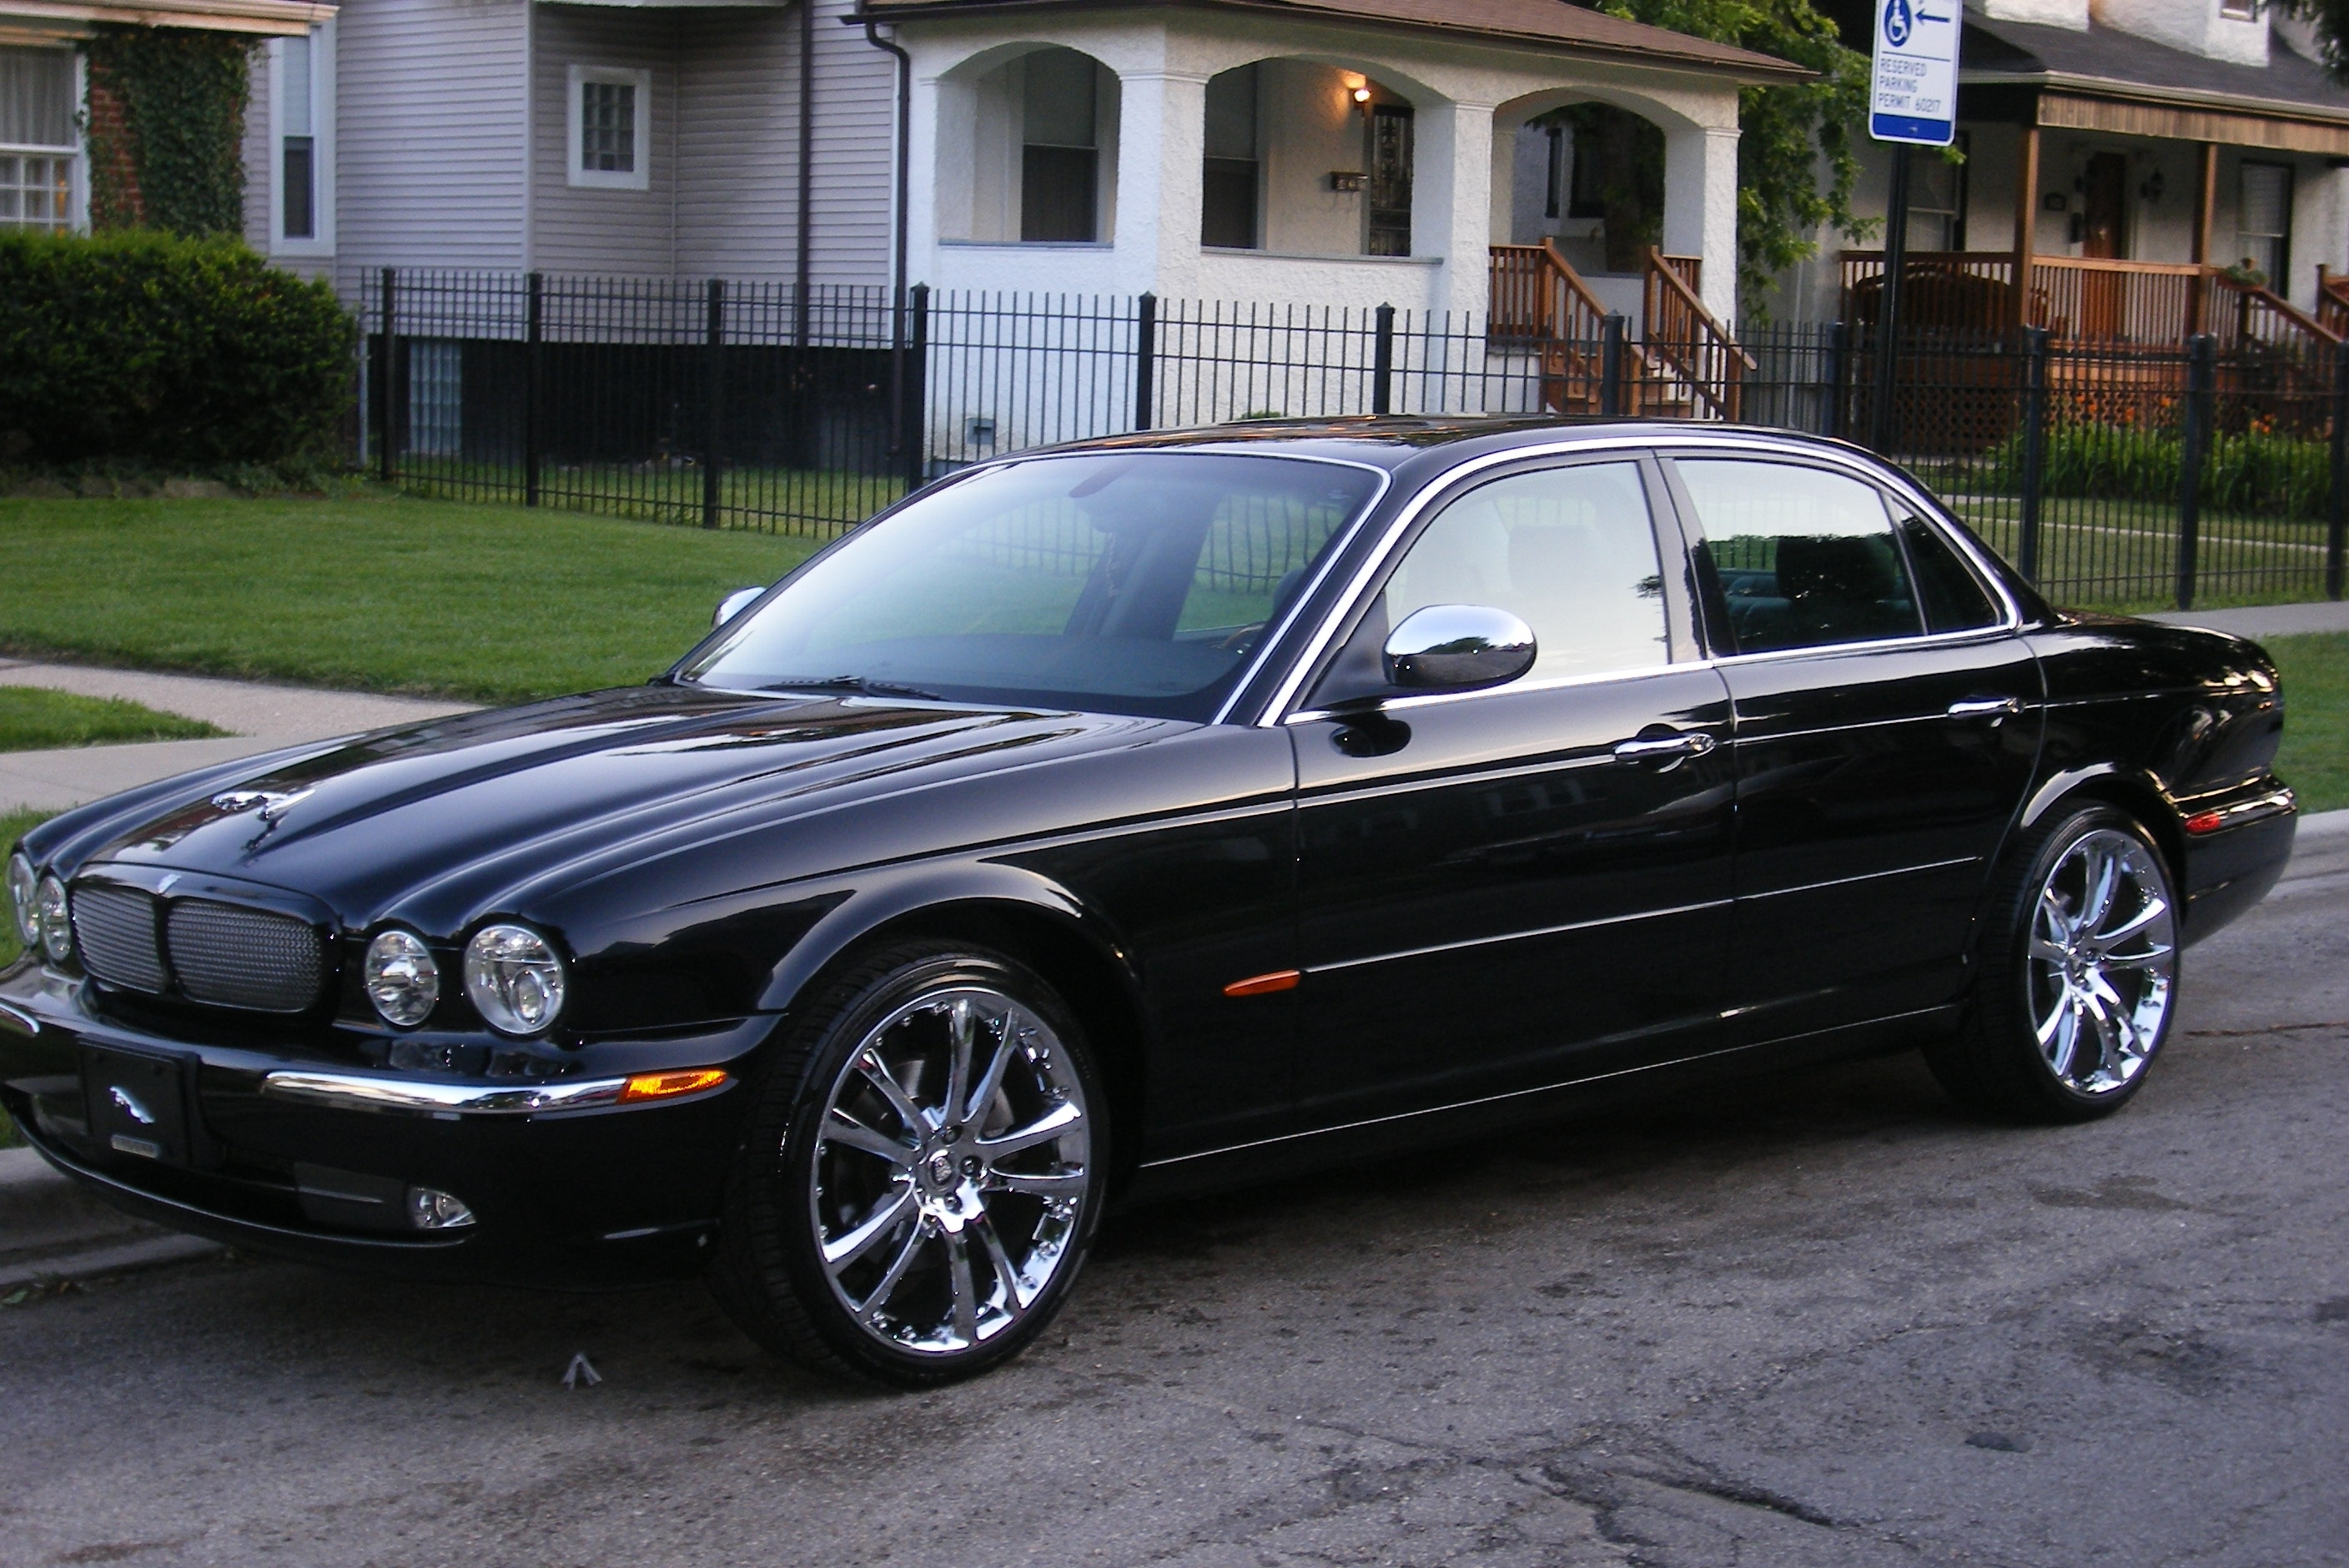 2003 Jaguar Xj-series #7